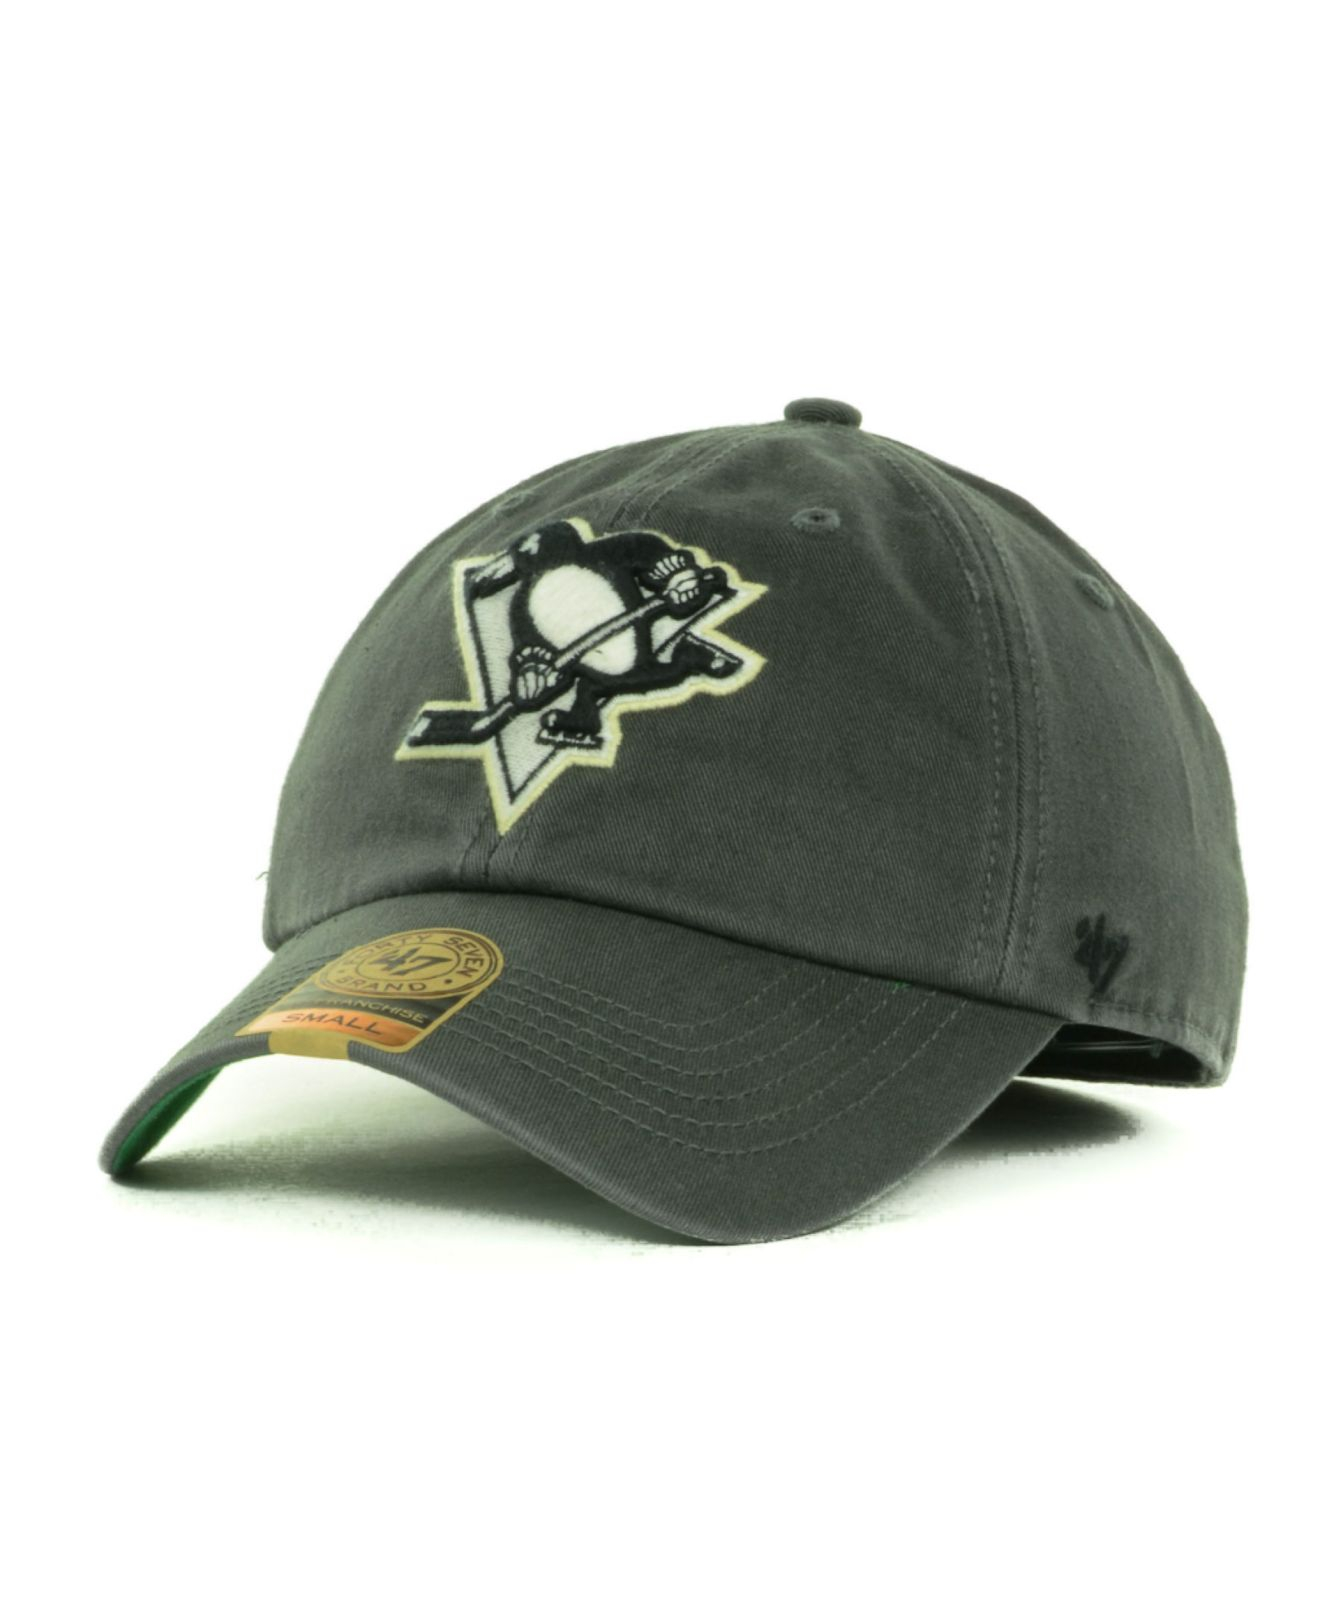 online store 8b61e 3647b ... new style lyst 47 brand pittsburgh penguins franchise cap in gray for  men 5a05b 0ae48